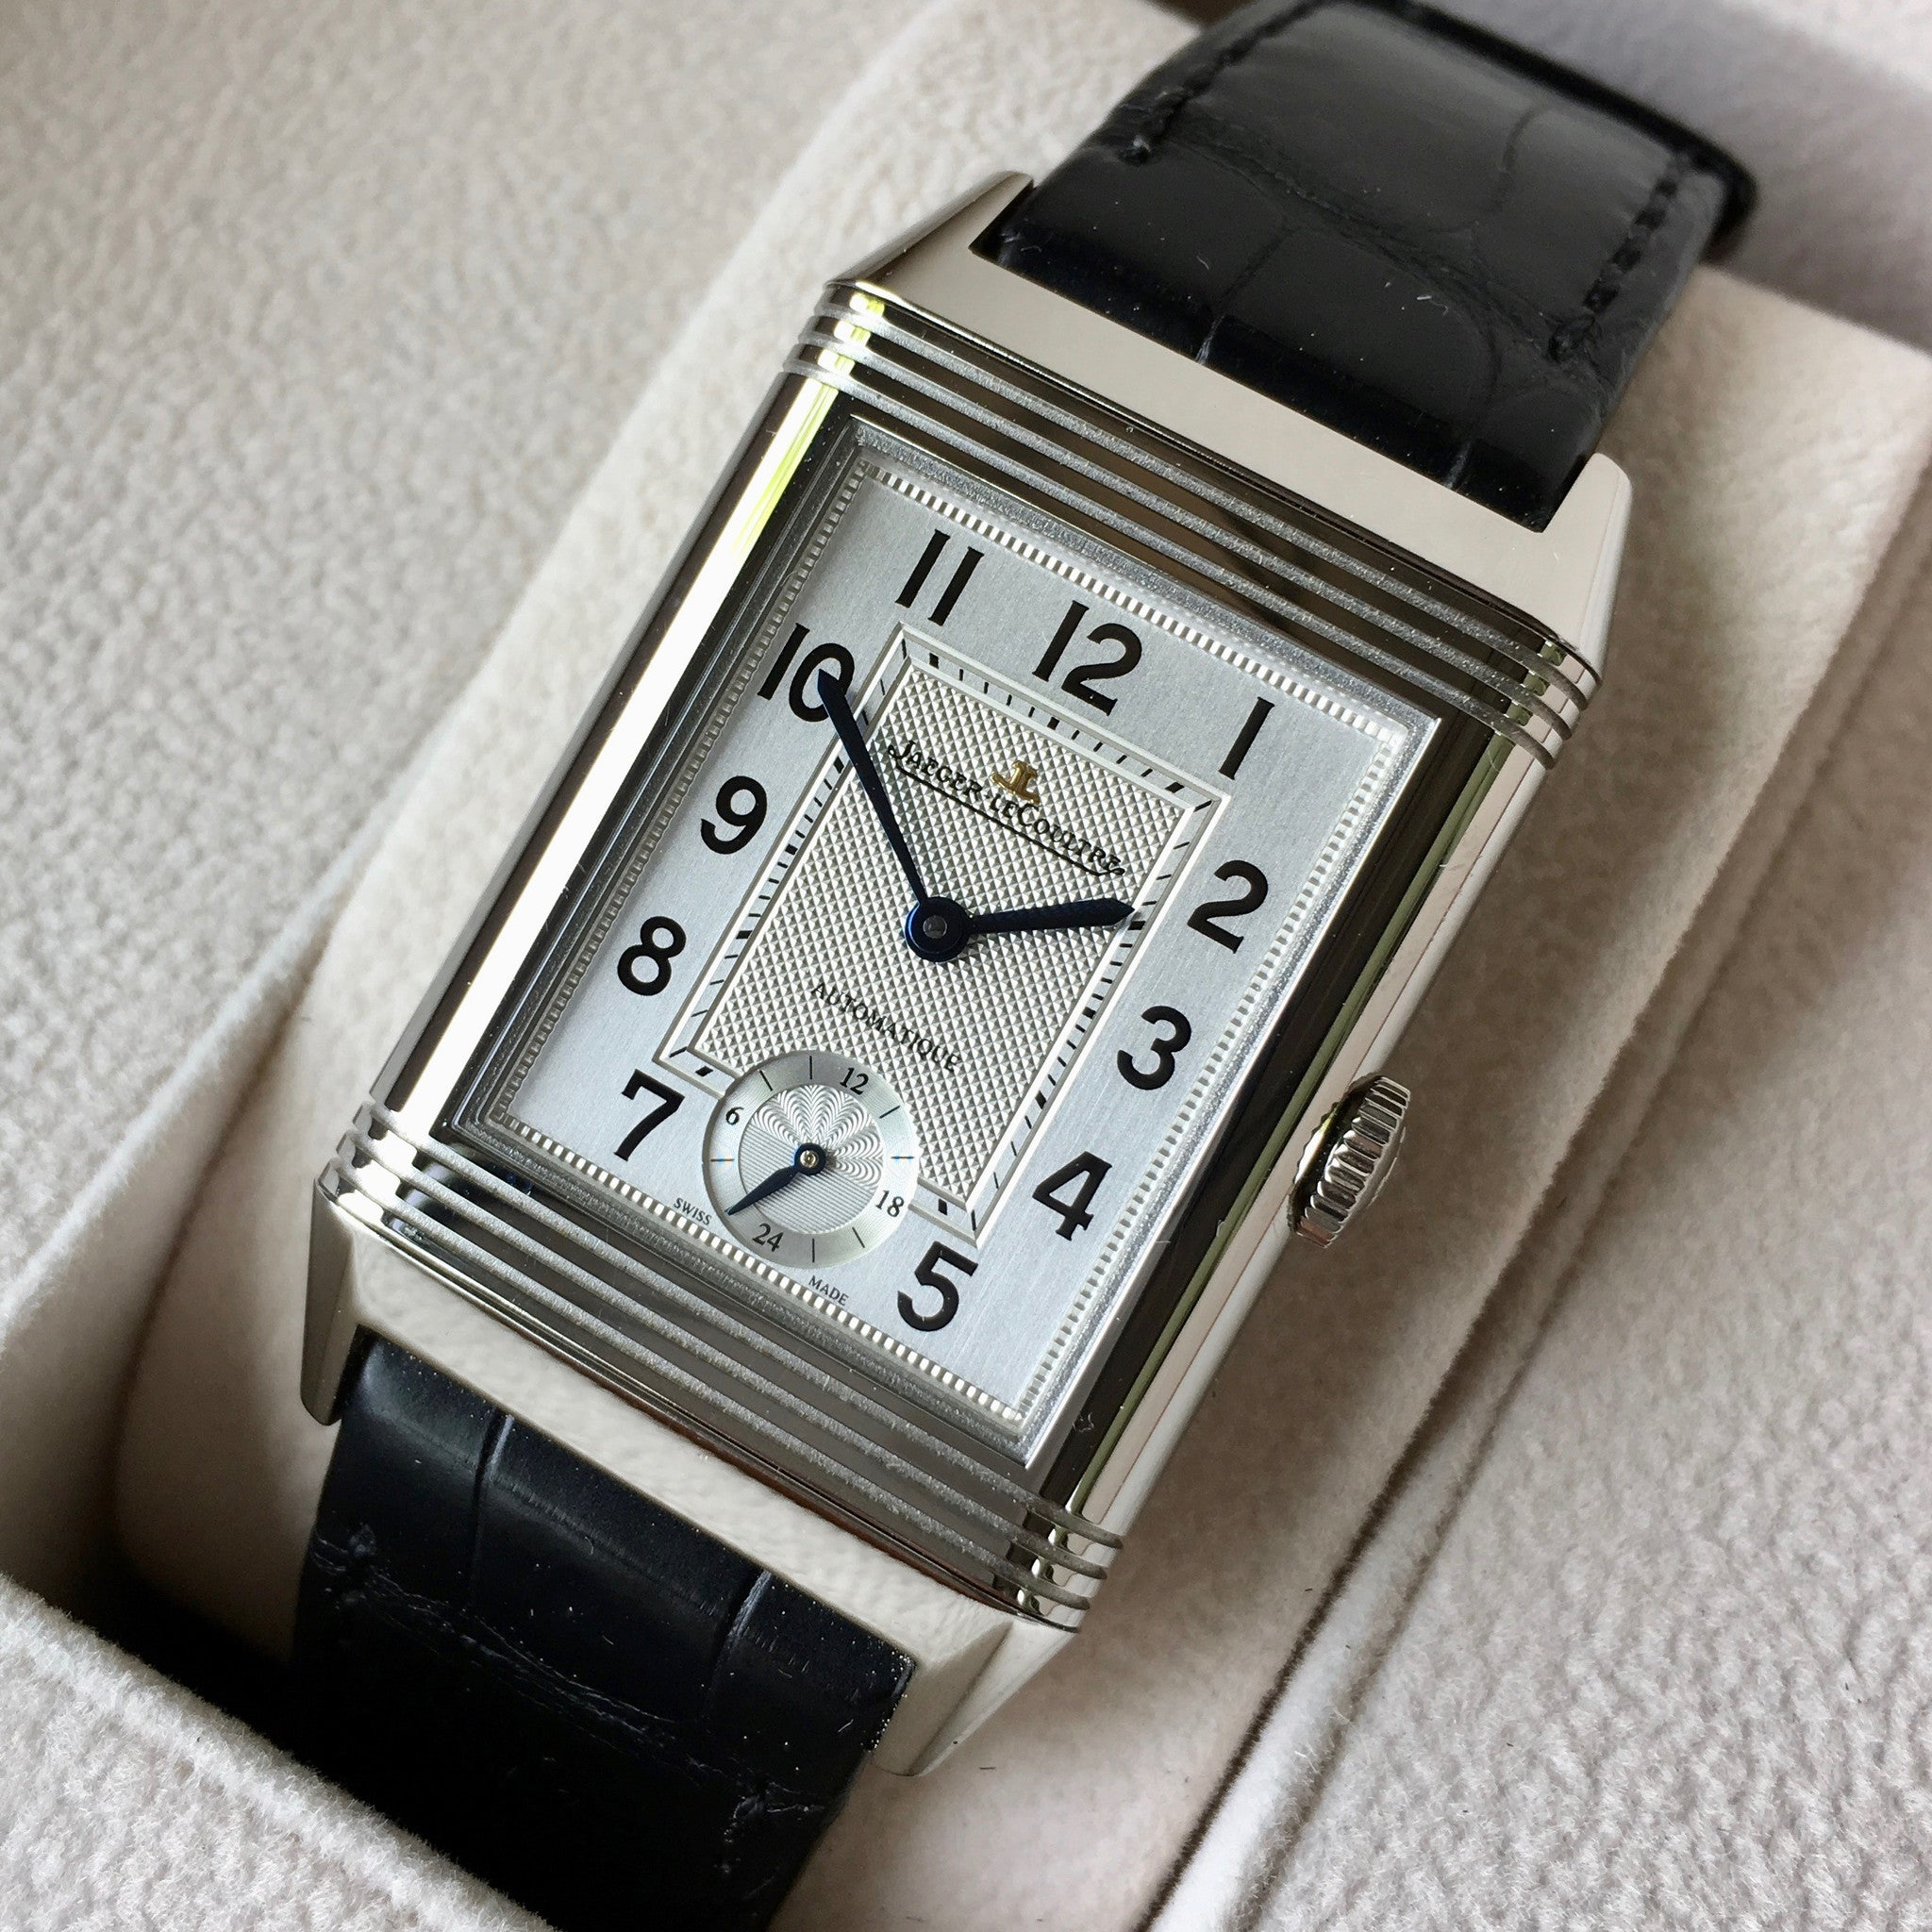 Jaeger LeCoultre Grande Reverso Day & Night Automatique Q3808420 278.8.56 Watch - Hashtag Watch Company